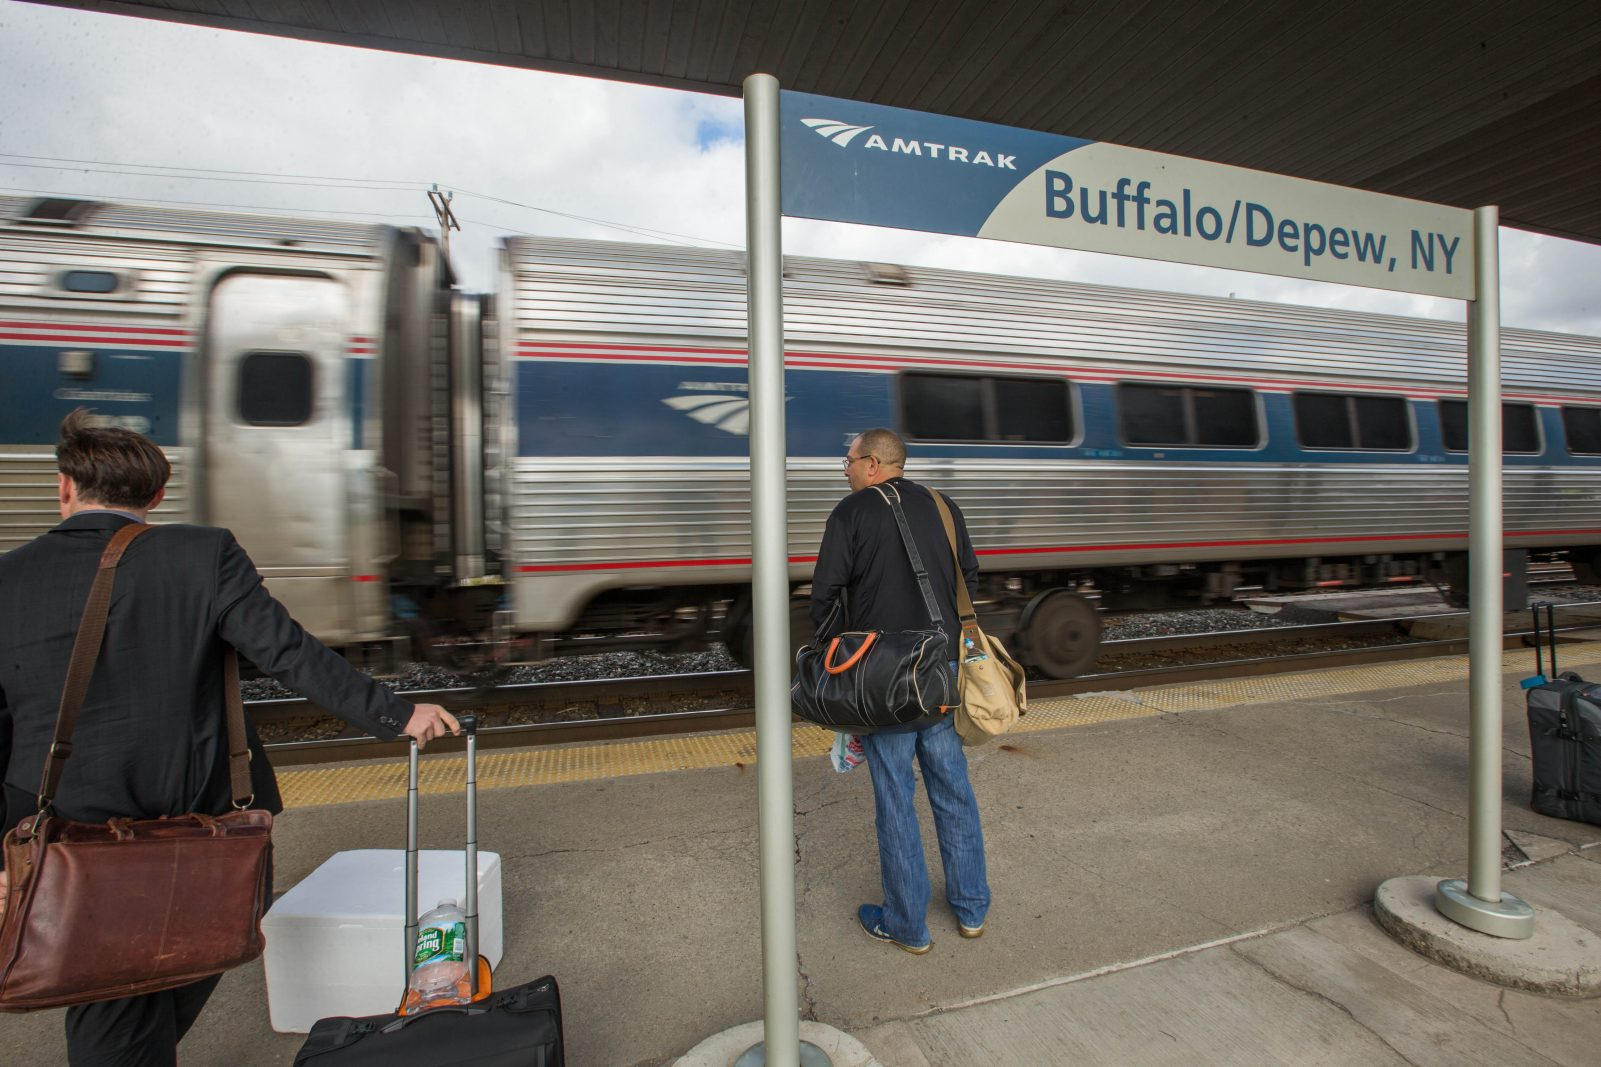 The Amtrak Station in Depew. (Derek Gee/Buffalo News)